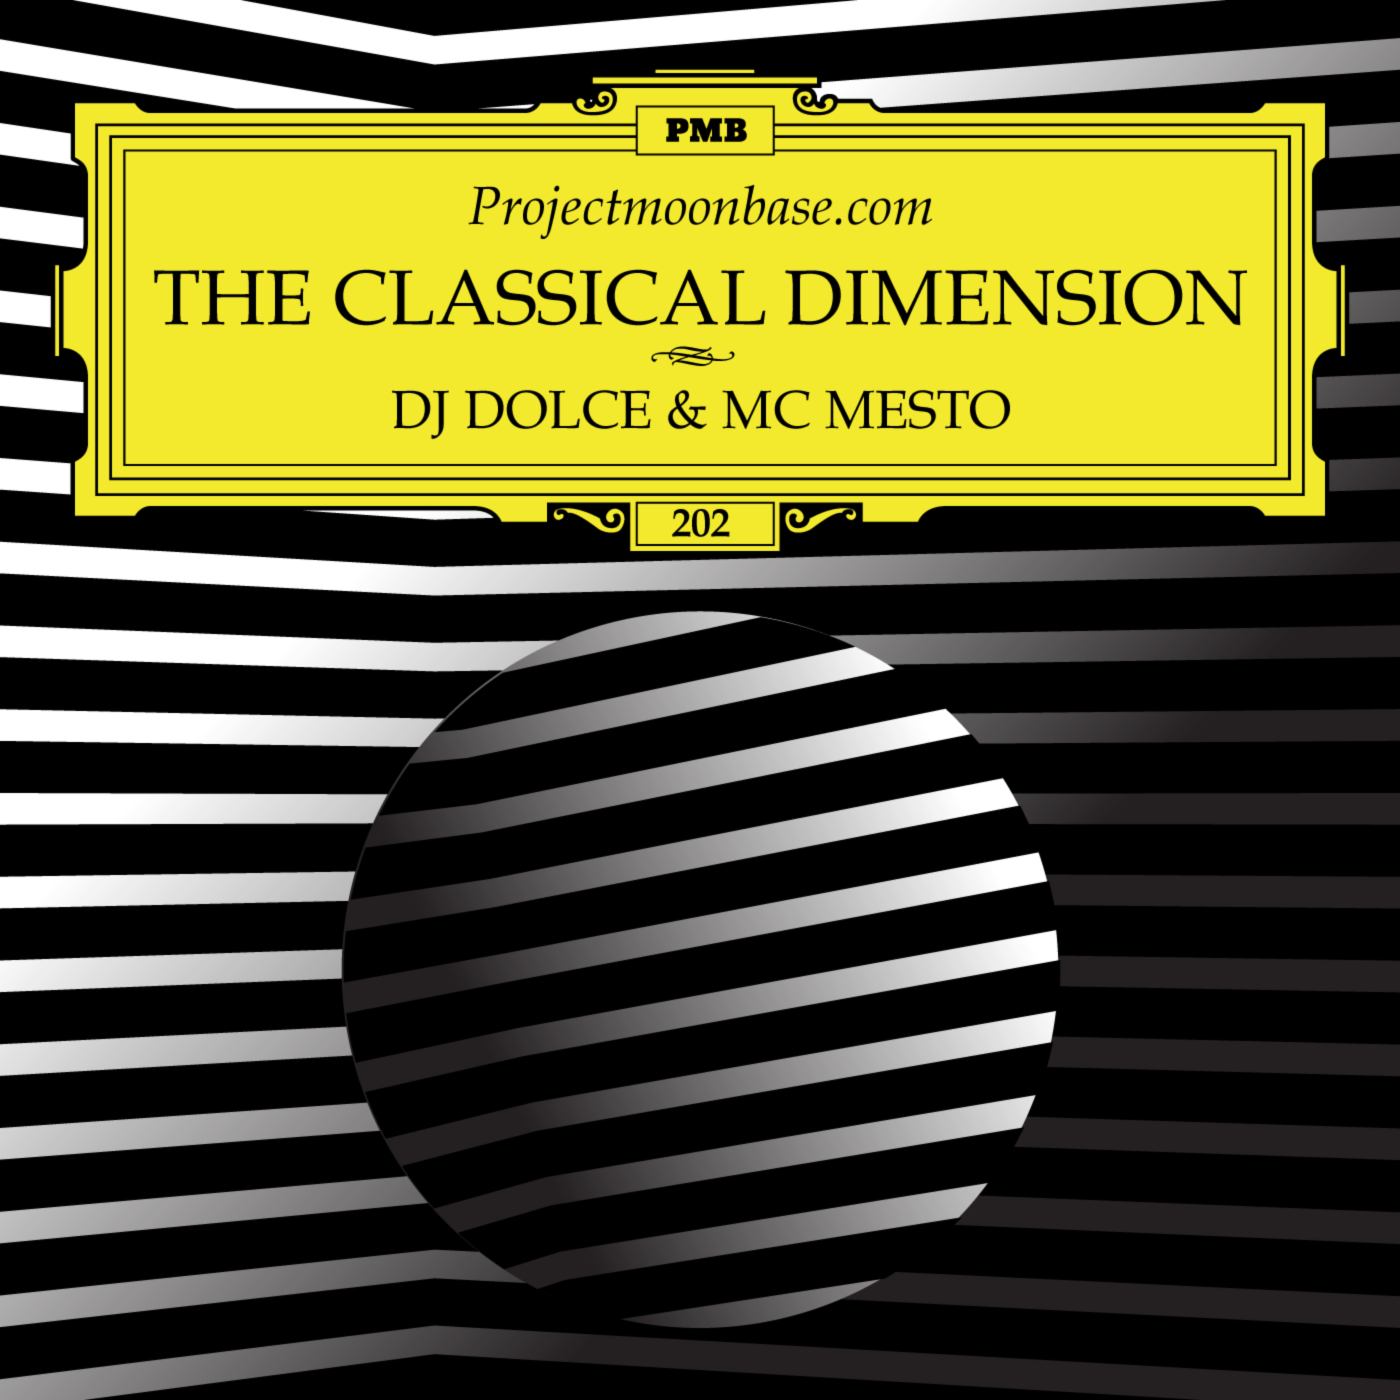 PMB202: The Classical Dimension